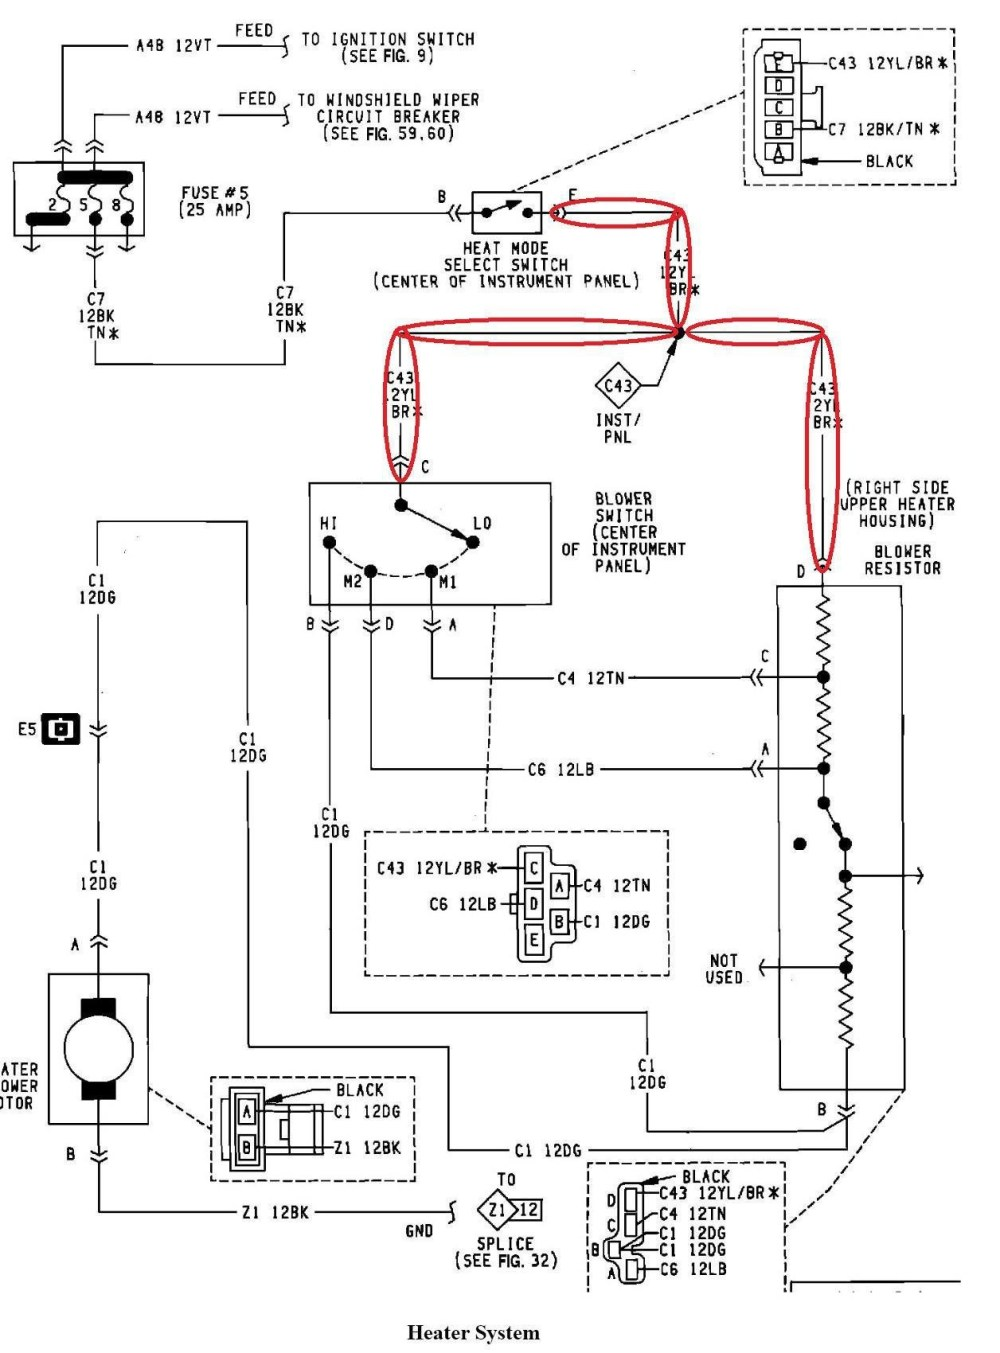 medium resolution of voltage reducer schematic wiring diagram technicwrg 6251 club car 48v wiring diagram voltage reducer